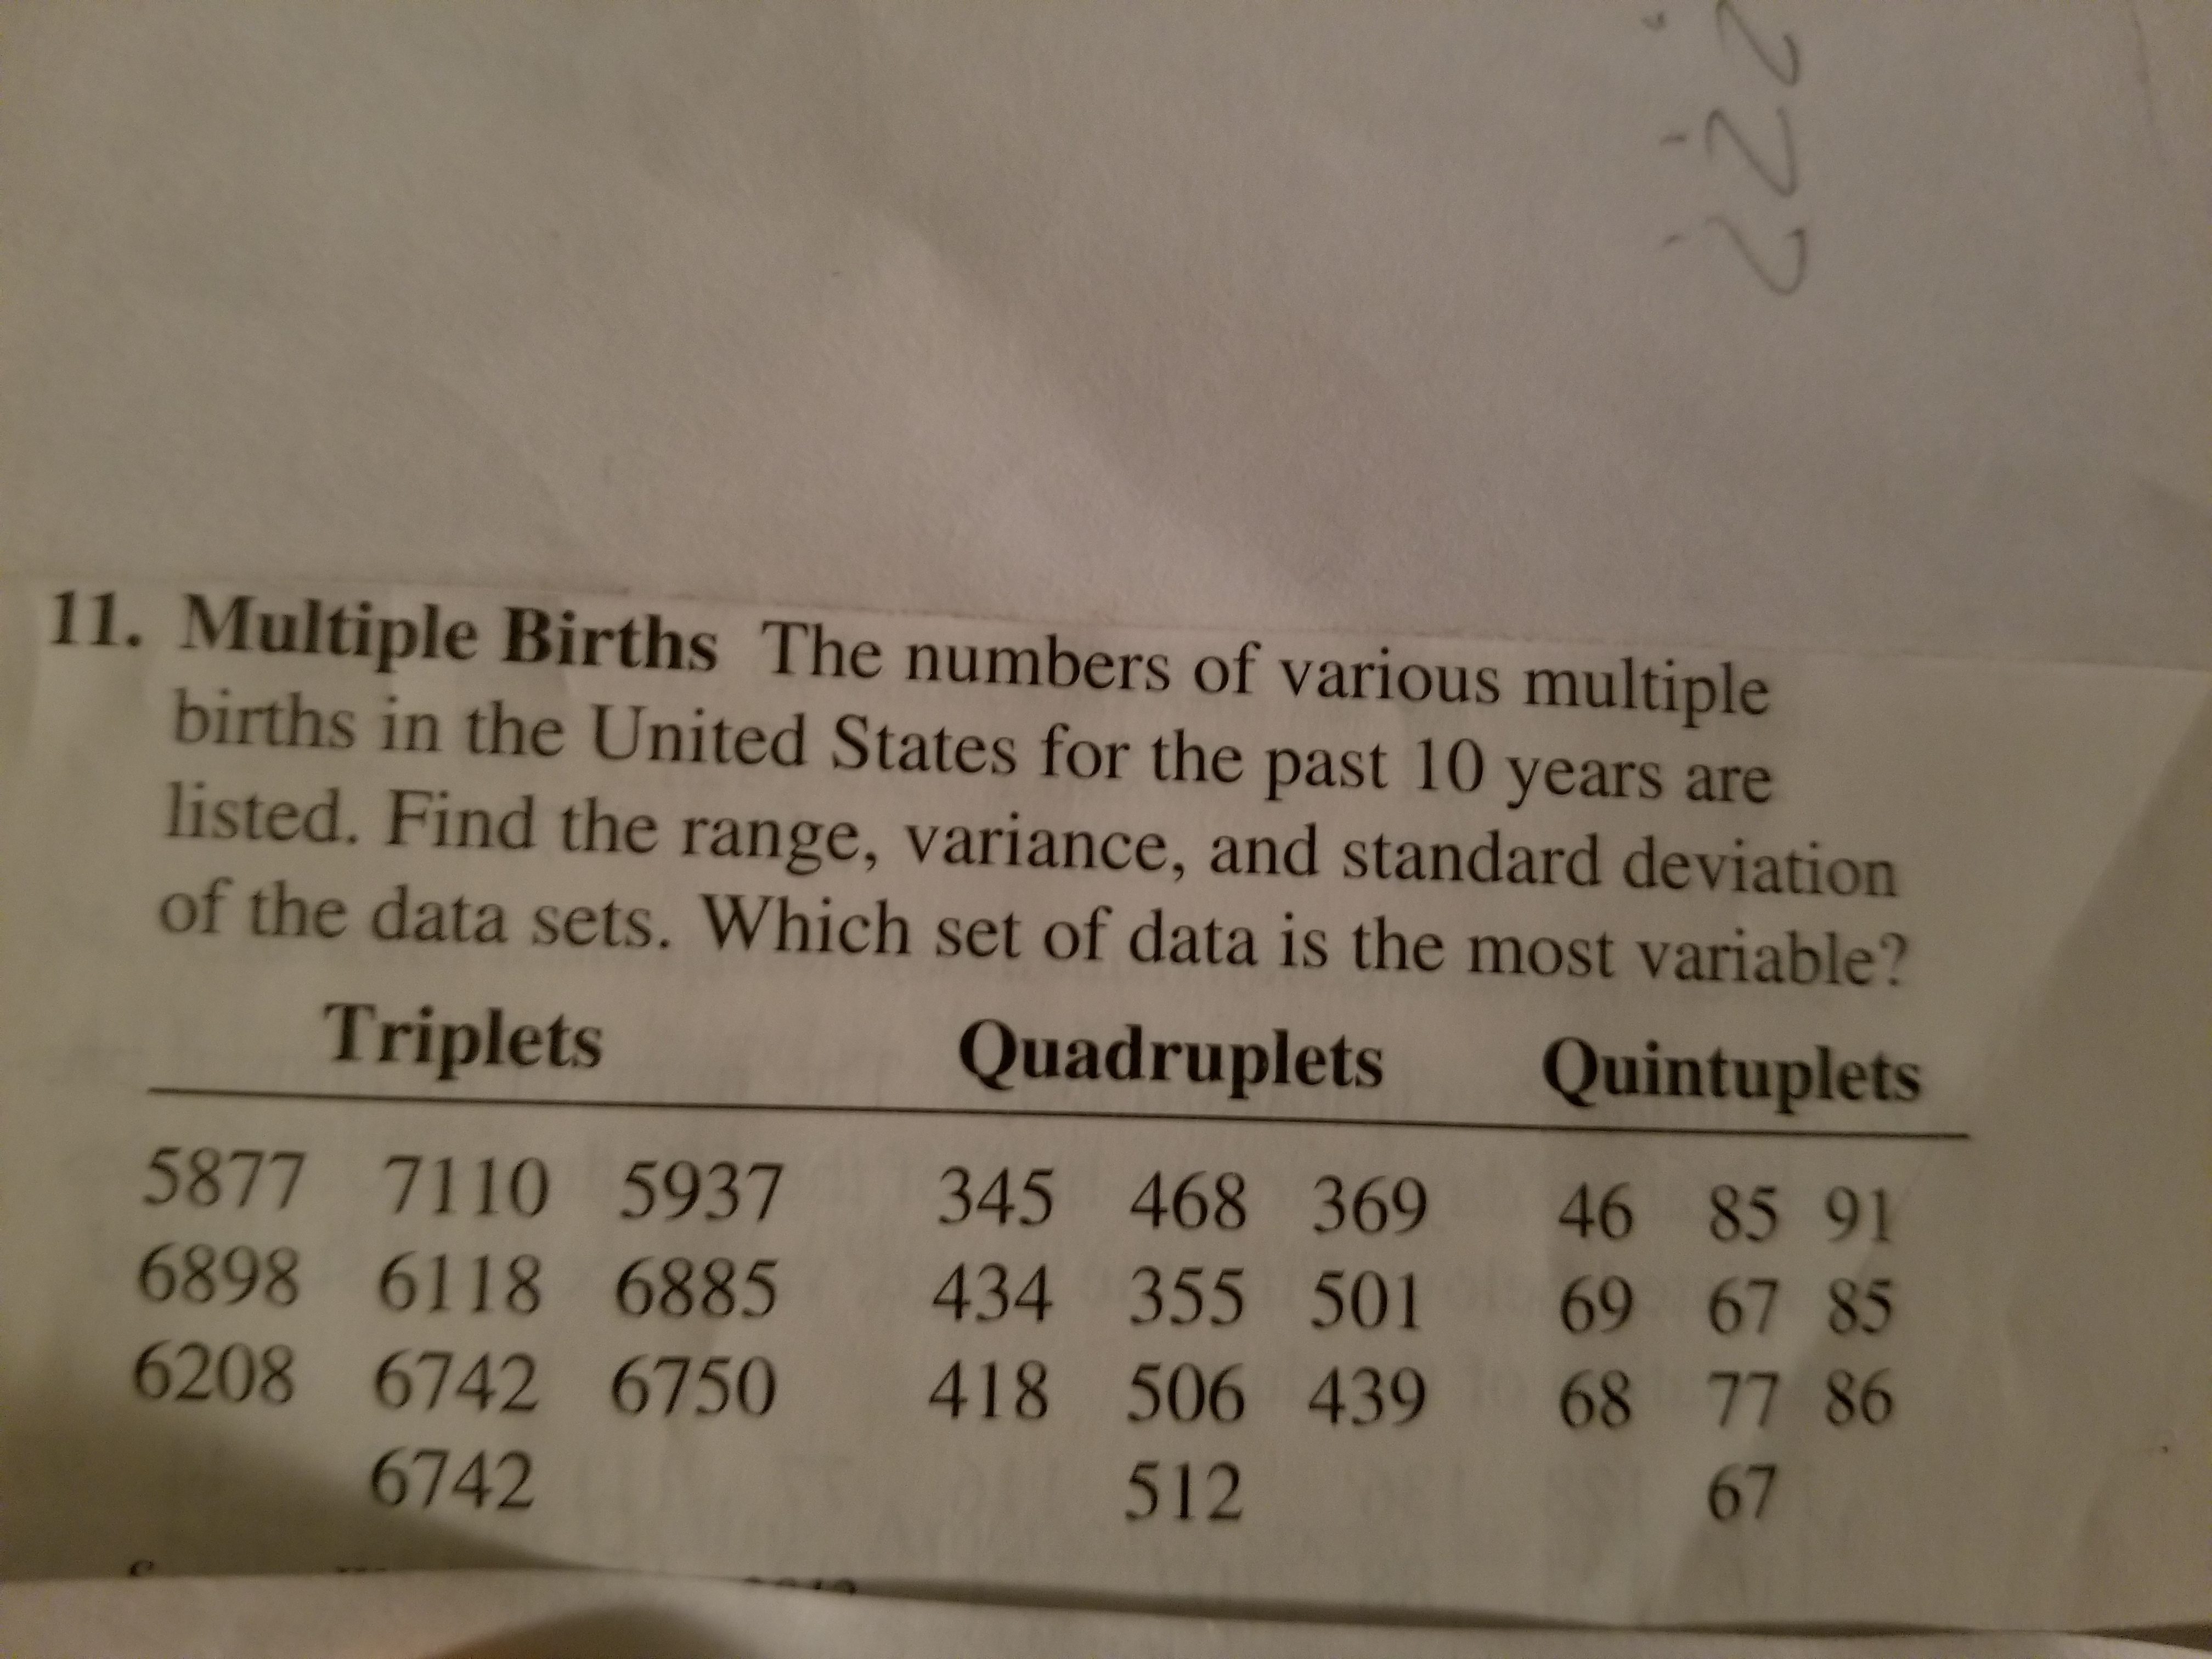 11. Multiple Births The numbers of various multiple births in the United States for the past 10 years are listed. Find the range, variance, and standard deviation of the data sets. Which set of data is the most variable? Triplets Quadruplets Quintuplets 5877 7110 5937 345 468 369 46 85 91 6898 6118 6885 434 355 501 69 67 85 6208 6742 6750 418 506 439 68 77 86 6742 512 67